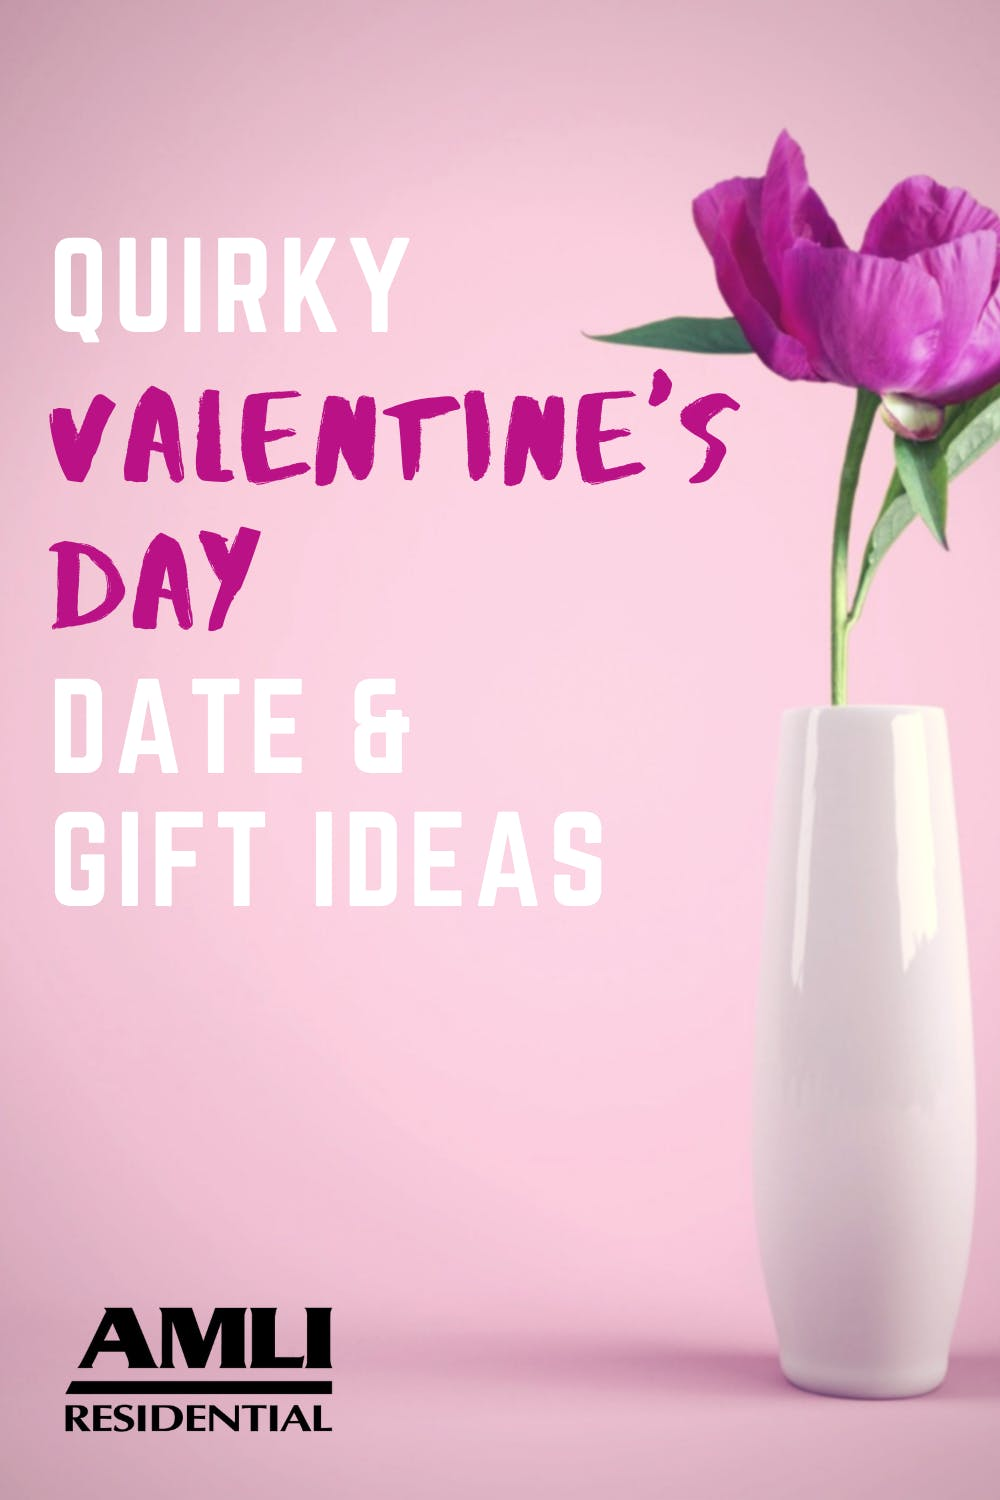 quirky valentine's day gift and date ideas Pinterest graphic